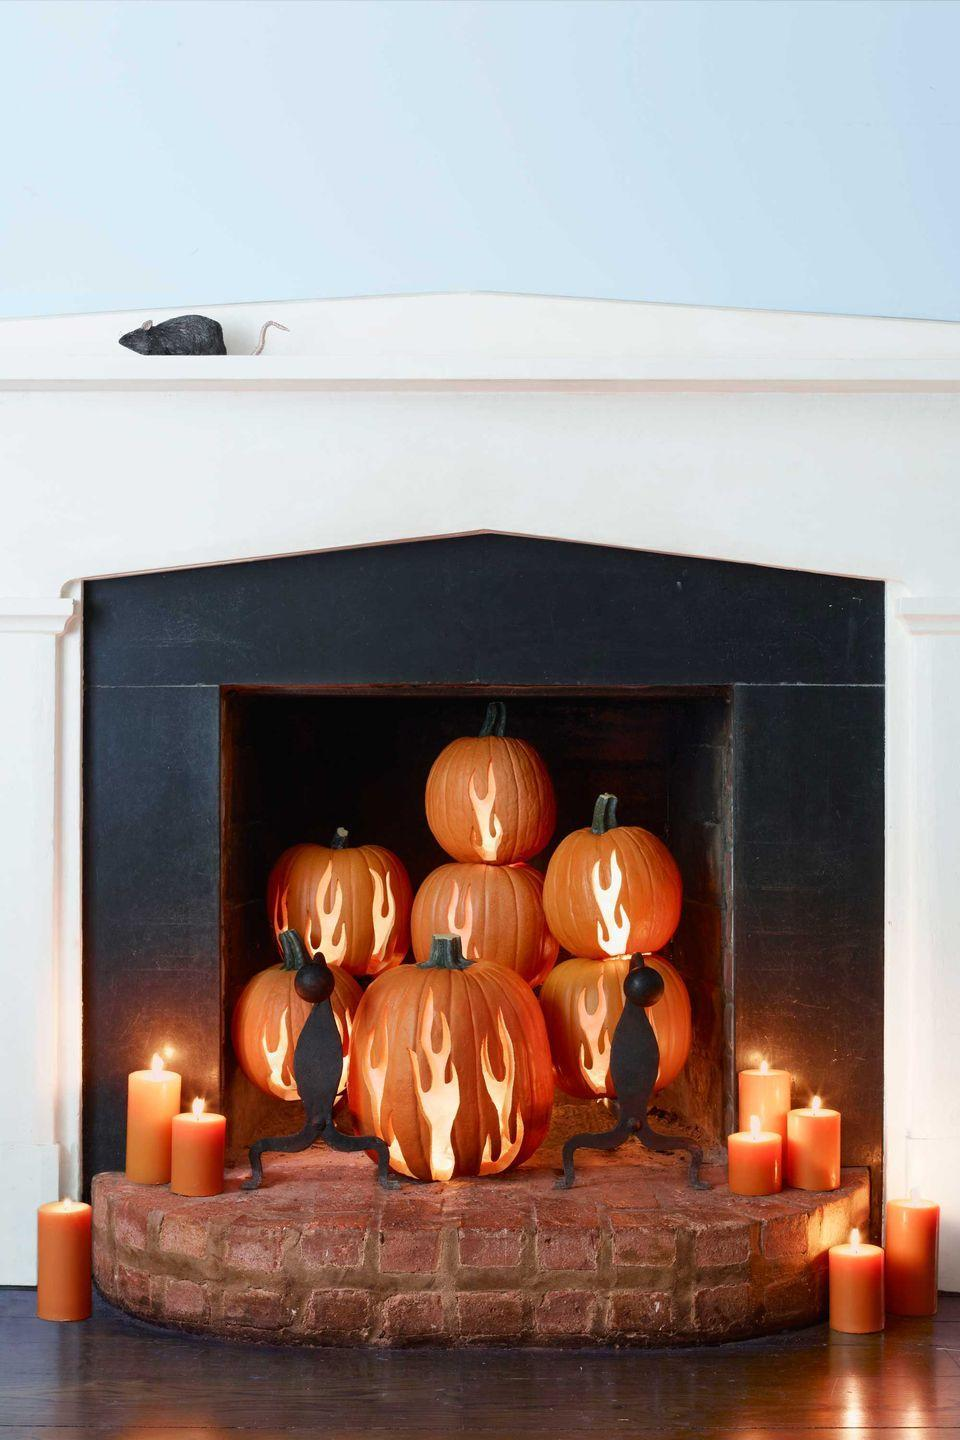 "<p>Set your hearth ablaze with these pumpkin-carved flames.</p><p><strong>Step 1:</strong> Begin by experimenting with the placement of pumpkins in your fireplace. Once you're satisfied with the arrangement, trim any stems that interfere with stacking stability, then determine how many flames each gourd should get. (Use this photo as a guide.) Note where each pumpkin goes and dismantle the arrangement.</p><p><strong>Step 2: </strong>Carve a hole in the bottom of each pumpkin, scoop out the pulp, and return the cut pieces.</p><p><strong>Step 3:</strong> Print out <a href=""https://www.countryliving.com/diy-crafts/how-to/a3048/halloween-templates-1009/"" rel=""nofollow noopener"" target=""_blank"" data-ylk=""slk:our flame templates"" class=""link rapid-noclick-resp"">our flame templates</a> and resize on a copier, scaling the images to fit your pumpkins. </p><p><strong>Step 4:</strong> Cut out stencils as directed on the templates and affix to pumpkins with masking tape. Trace on the designs with a felt-tip pen. </p><p><strong>Step 5:</strong> Remove stencils, then carefully carve along the drawn lines with an X-Acto knife. Affix a battery-operated votive candle in the base of each pumpkin with adhesive putty. Finish by restoring your arrangement. </p><p><a class=""link rapid-noclick-resp"" href=""https://www.amazon.com/Homemory-Realistic-Flickering-Flameless-Celebration/dp/B01EDKGFGU/?tag=syn-yahoo-20&ascsubtag=%5Bartid%7C10050.g.1350%5Bsrc%7Cyahoo-us"" rel=""nofollow noopener"" target=""_blank"" data-ylk=""slk:SHOP TEA LIGHTS"">SHOP TEA LIGHTS</a><br></p>"